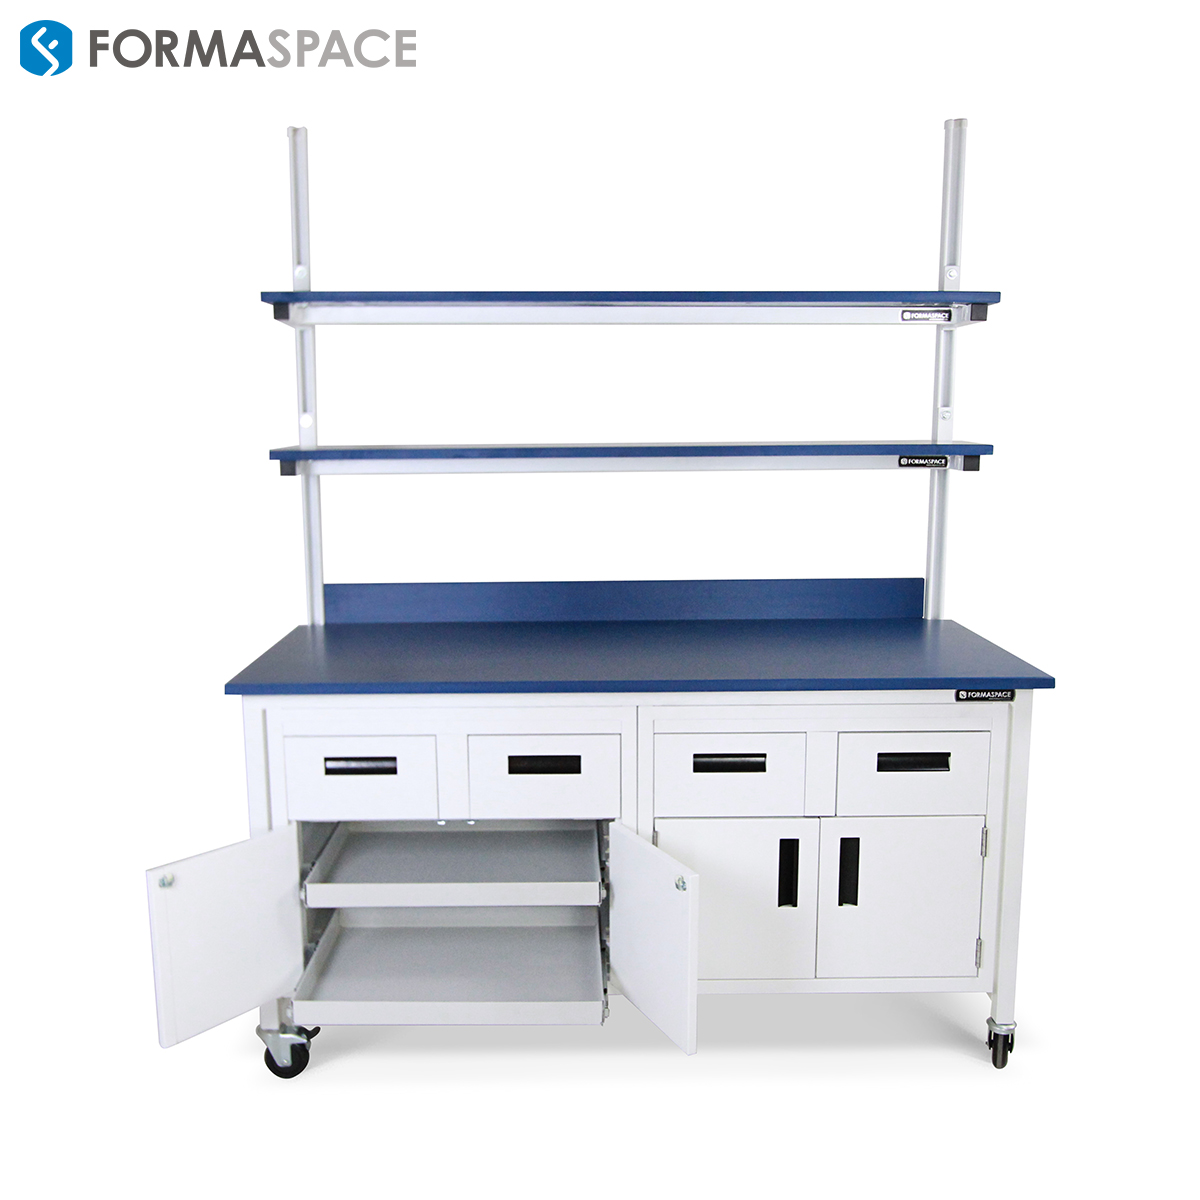 Laboratory Benchmarx with Sliding Shelf Cabinetry System